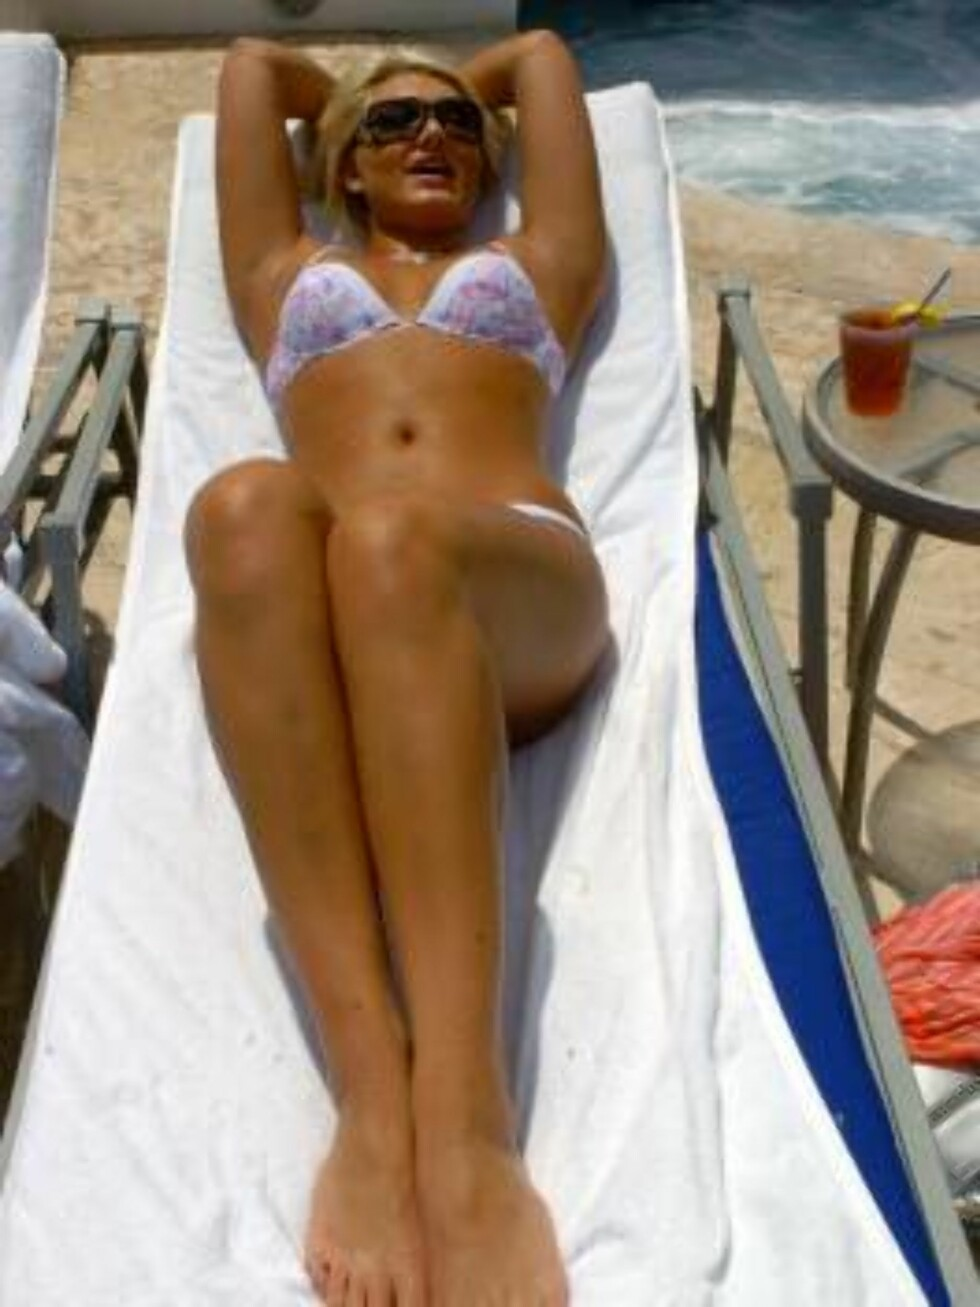 MIAMI 2006-05-01  A very blonde and very tan Brooke Hogan, daughter of the one and only Hulk Hogan, works the camera while relaxing poolside in Miami this May. The young woman is showing off her new body, just in time for the release of her debut cd. Foto: STELLA PICTURES